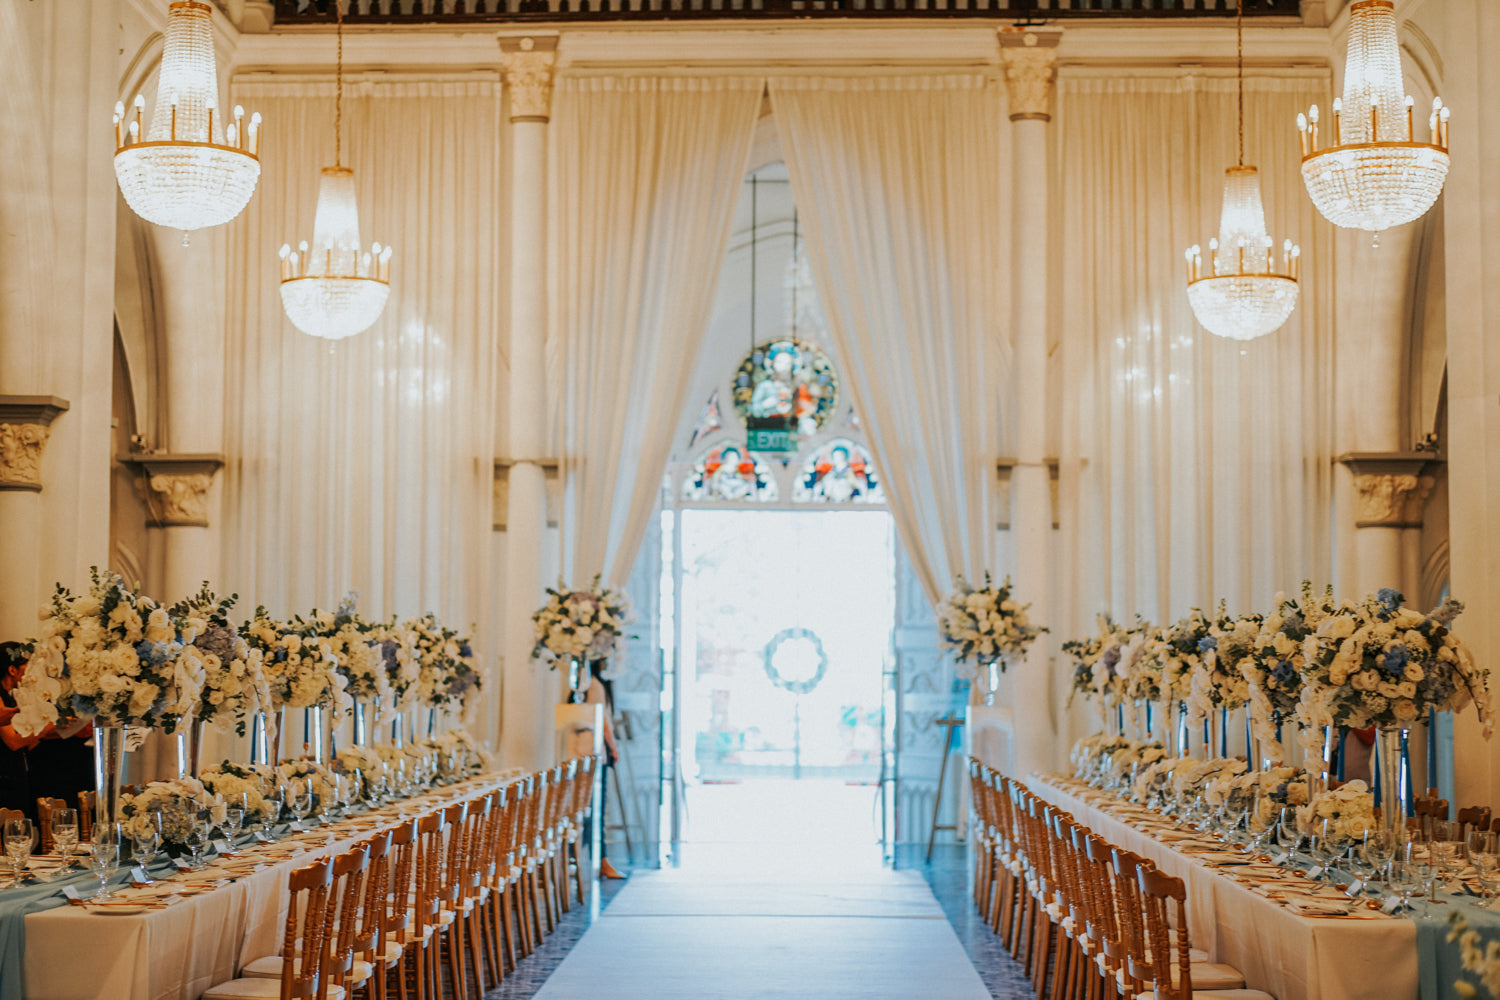 Doorway of CHIJMES hall with light streaming in on long, white tables of floral arrangements. Chandeliers hang next to ivory curtains